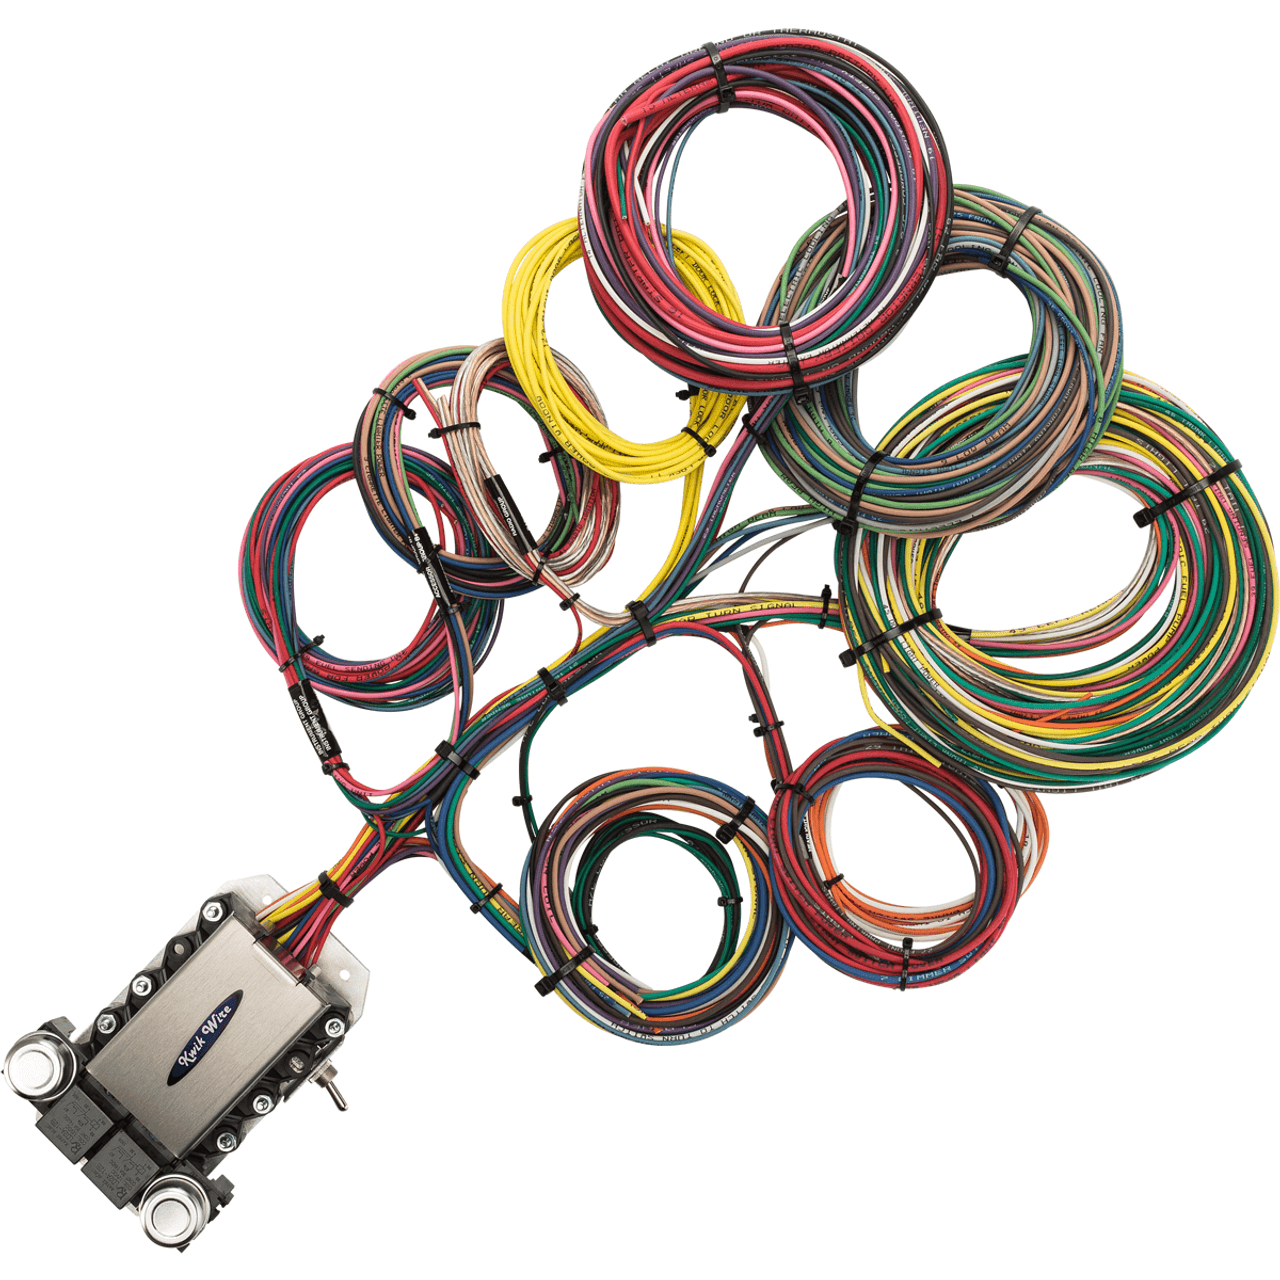 20 Circuit Wire Harness - KwikWire.com | Electrify Your Ride